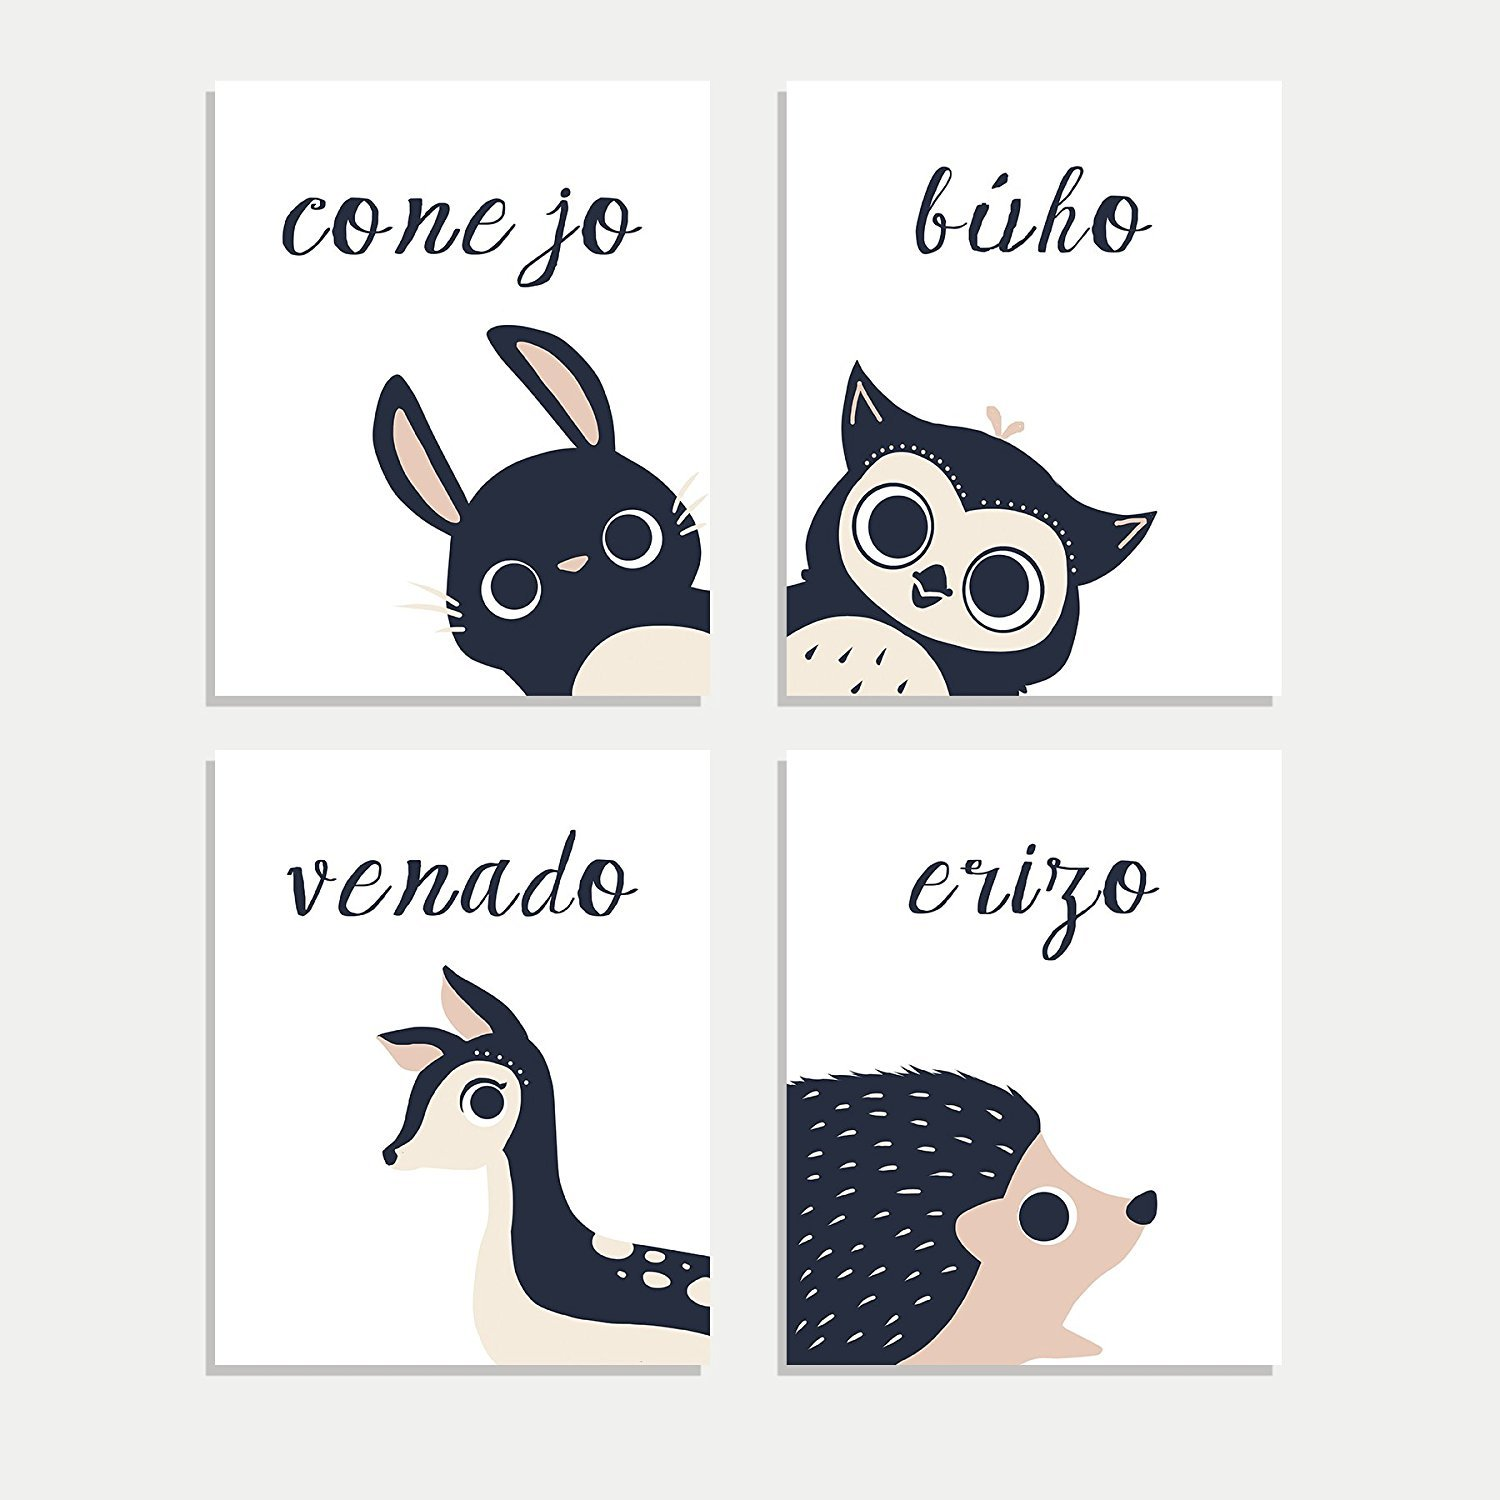 Kids Room Wall Decor Bedroom Wall Decor Cute Wall Decor Giraffe Nursery Decor Kids Decor 05x07 Inch Print